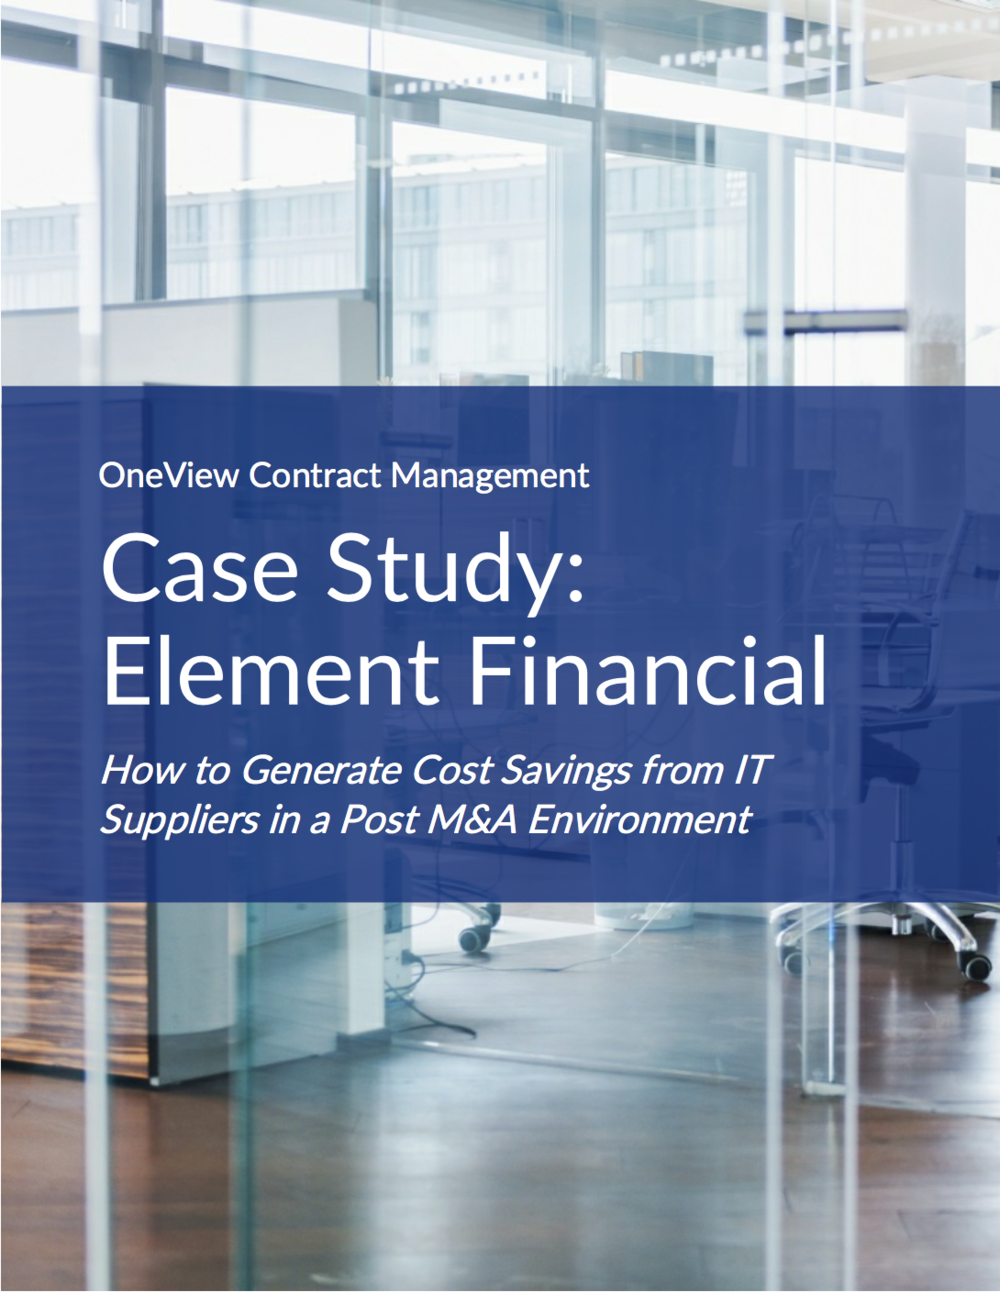 Case Study: Element Financial Generates $2M in Annual Cost Savings - Learn how Element Financial save over $2 million in annual savings by renegotiating technology contracts after a $2 billion acquisition.